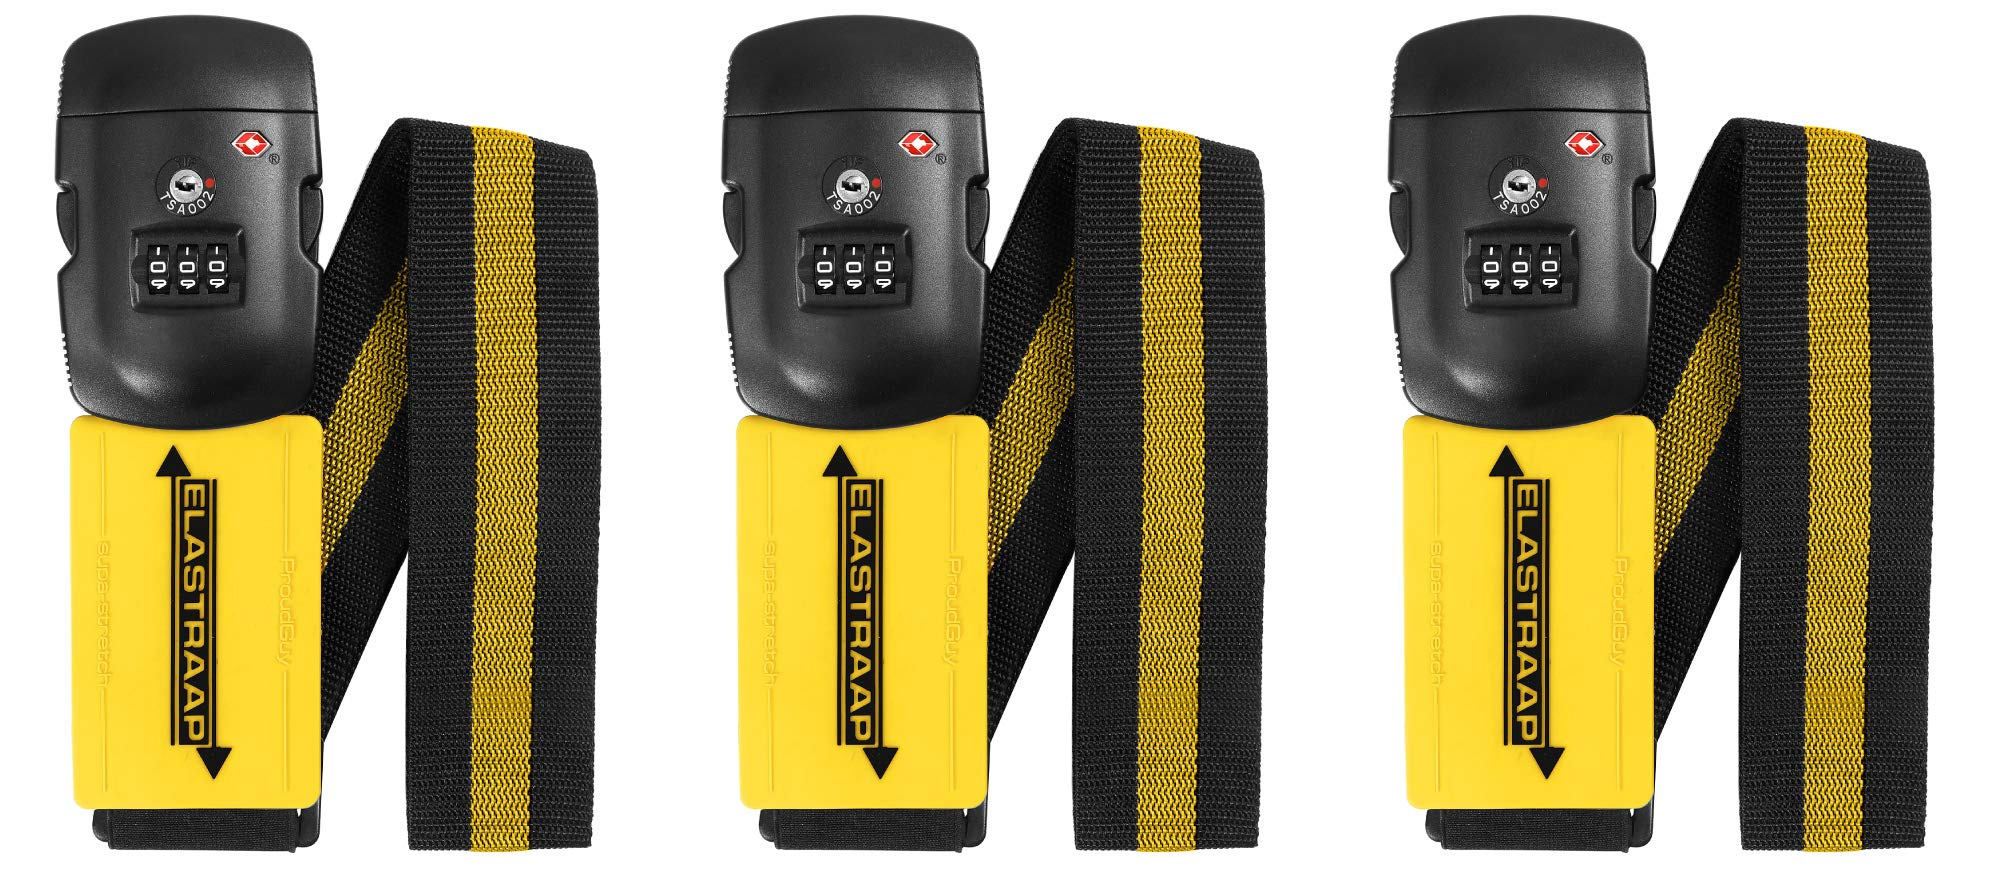 TSA Luggage Straps ELASTRAAP for Carry On, Non-Slip, 3 Pack Bundle (3 Yellow) by ProudGuy